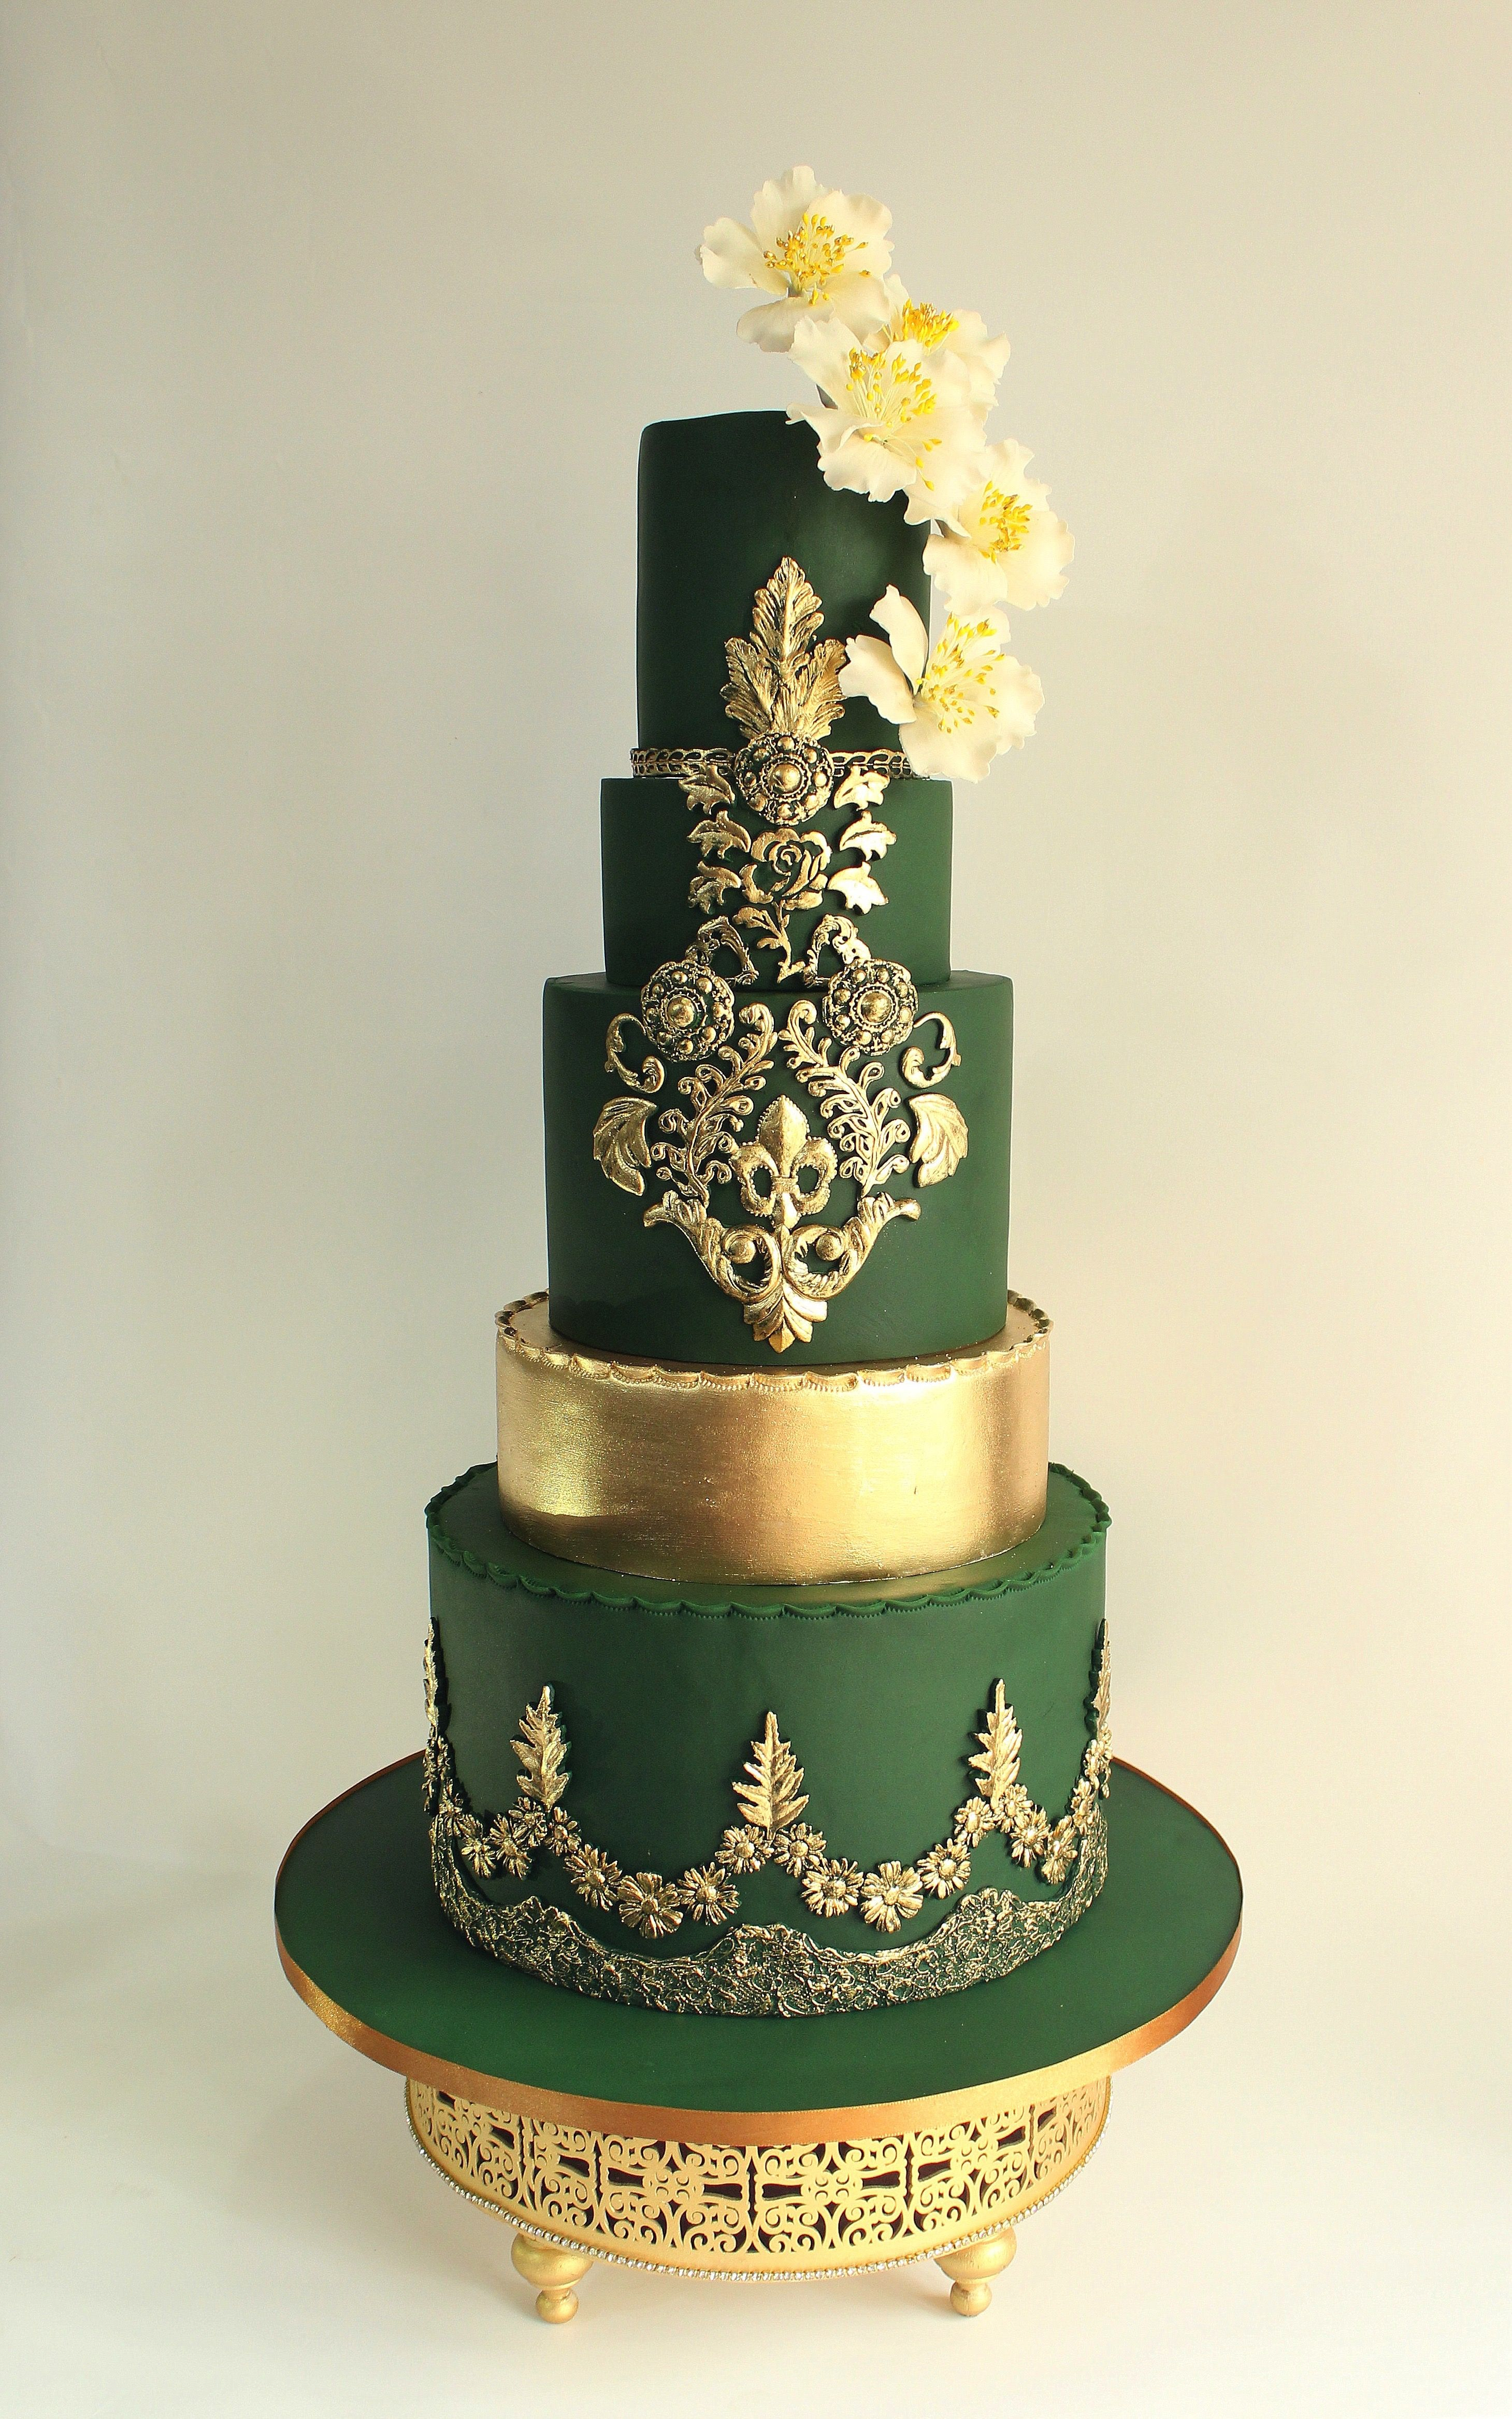 A Gallery Of Fondant And Gum Paste Wedding Cakes From Cake Decorators Around The World Inspired Green Wedding Cake Fondant Wedding Cakes Chocolate Wedding Cake